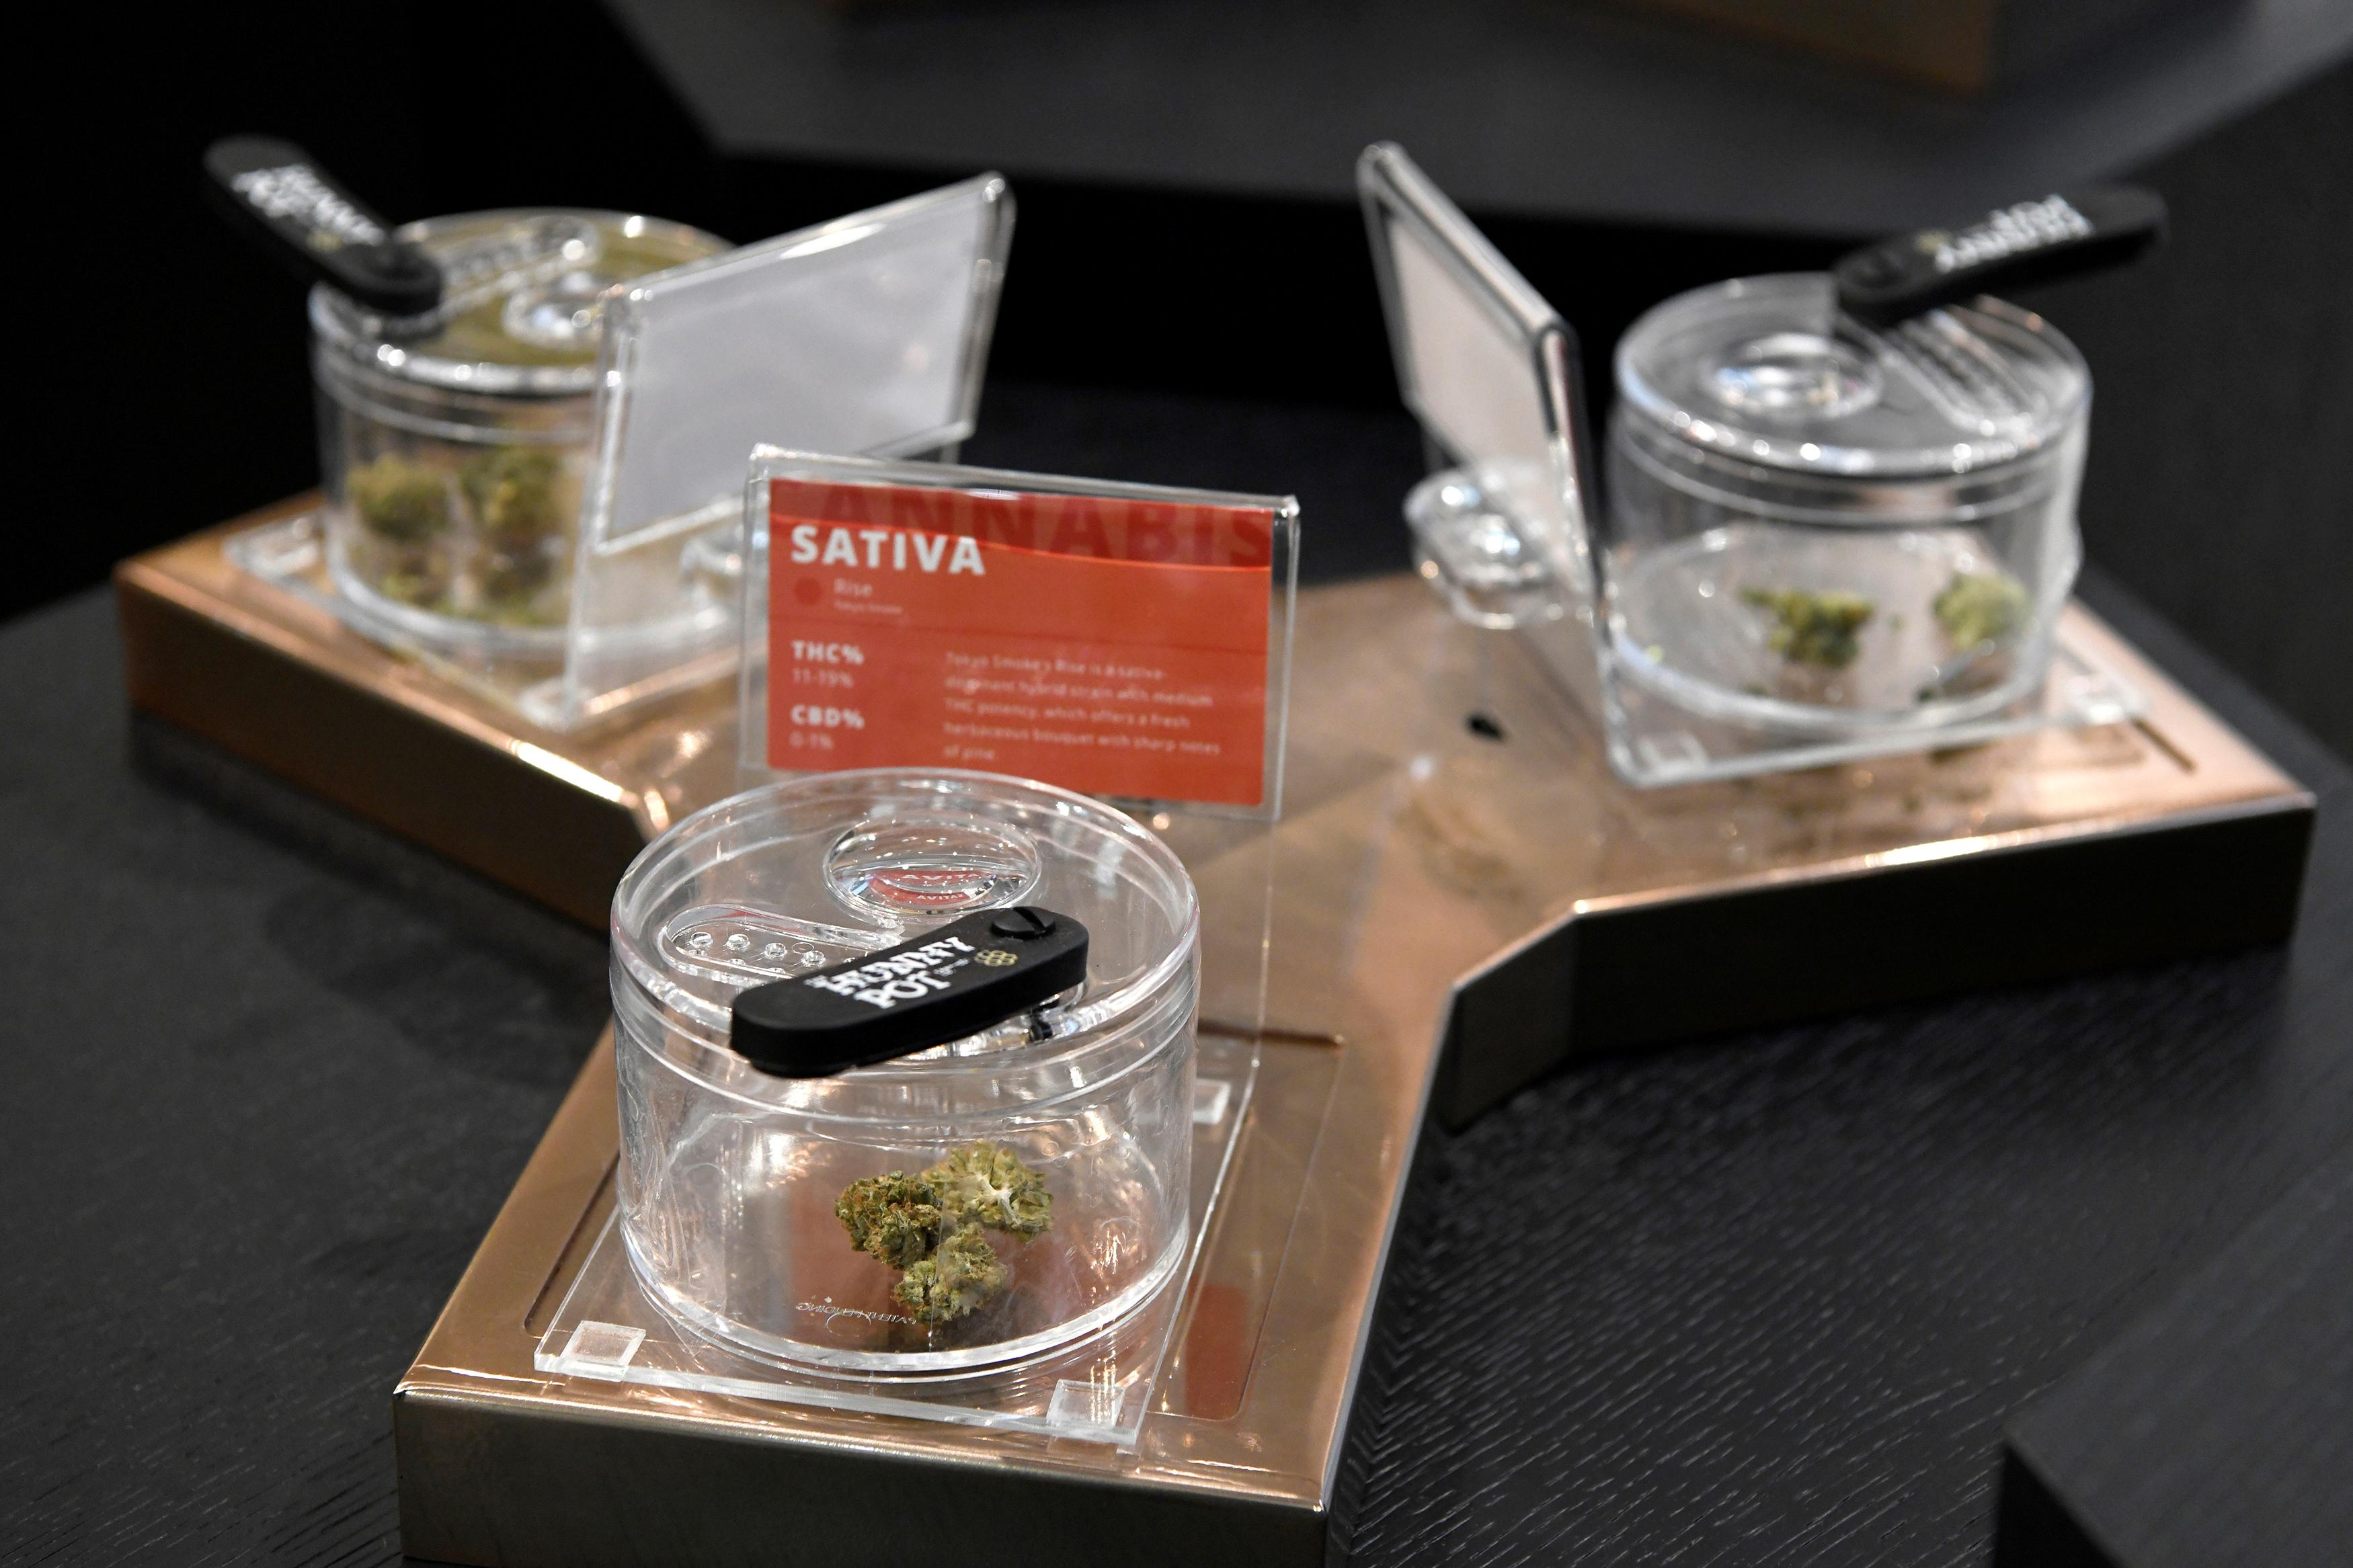 Canada's new cannabis licensing favors richer companies, experts say